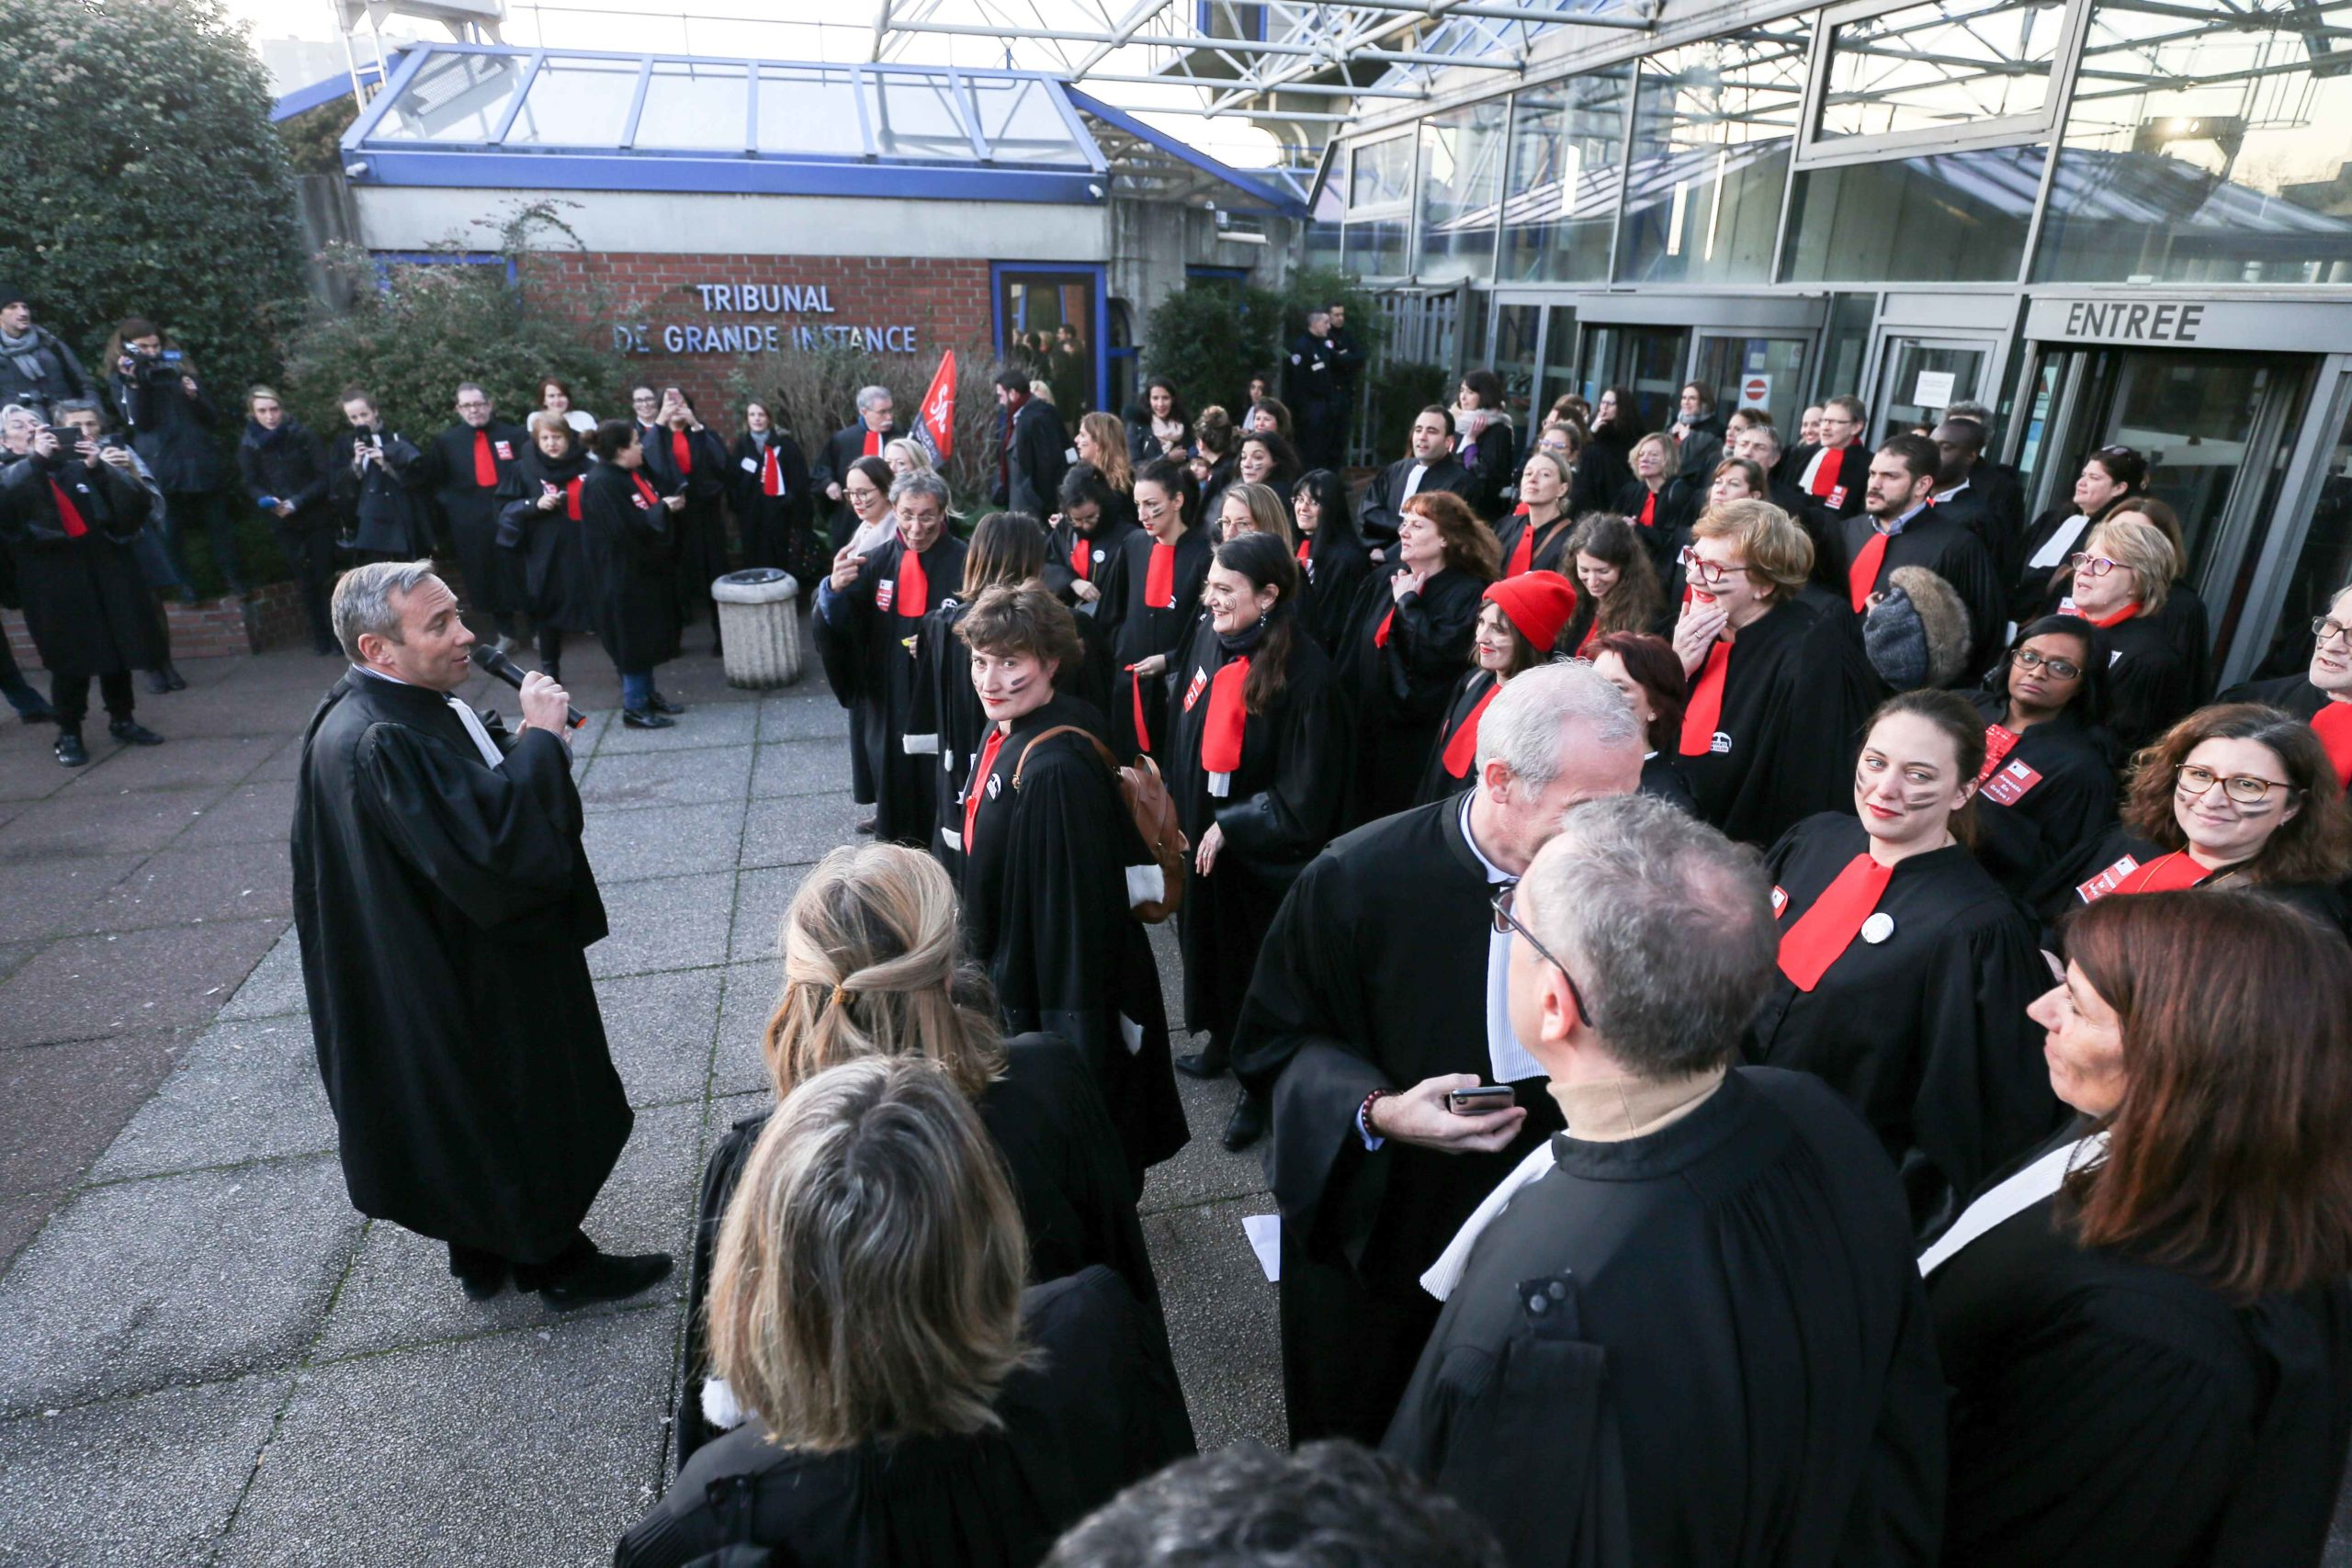 A dozen of lawyers and from the avocature, made an action on the square of the high court of Bobigny, France, the tGI, on 22 January 2020, to protest against the pension reform of the governement. They sang some song, made a rugby Aka, to show their anger.